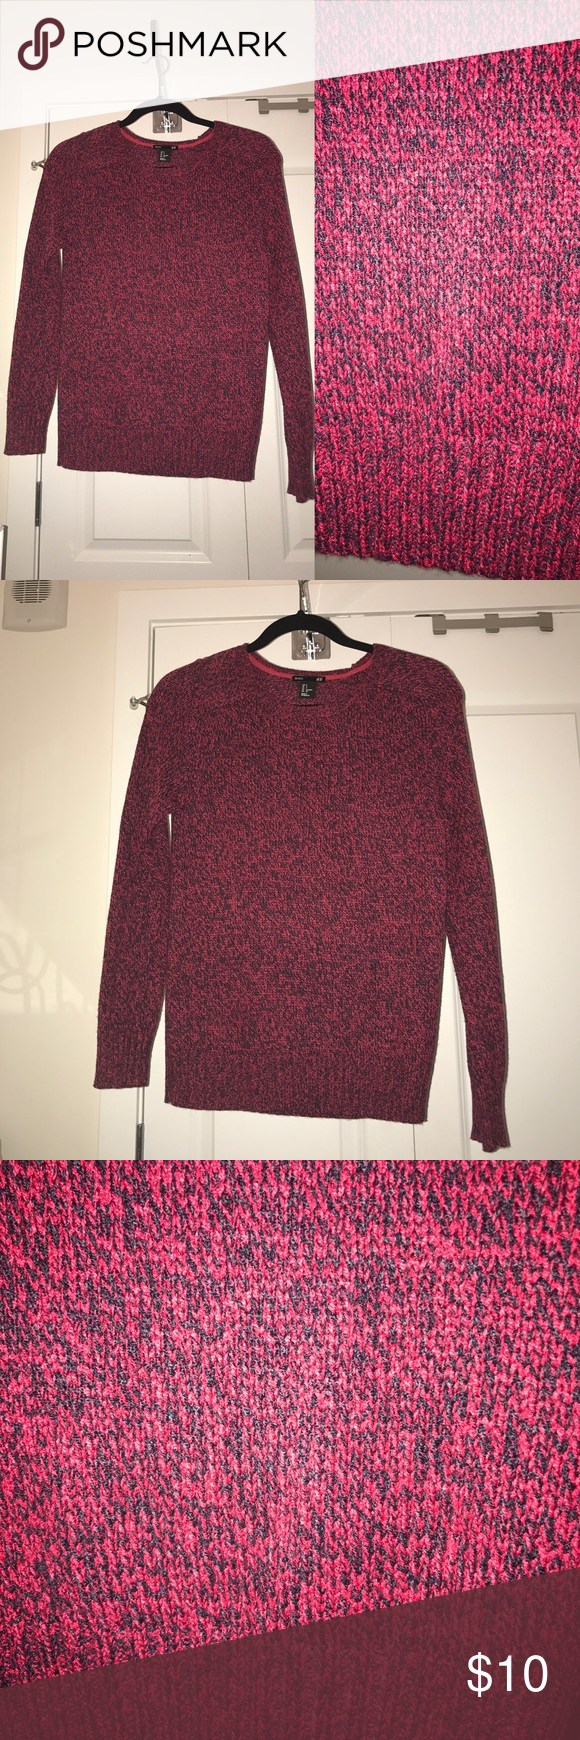 Pink and purple sweater by H&M | Purple, Conditioning and Customer ...